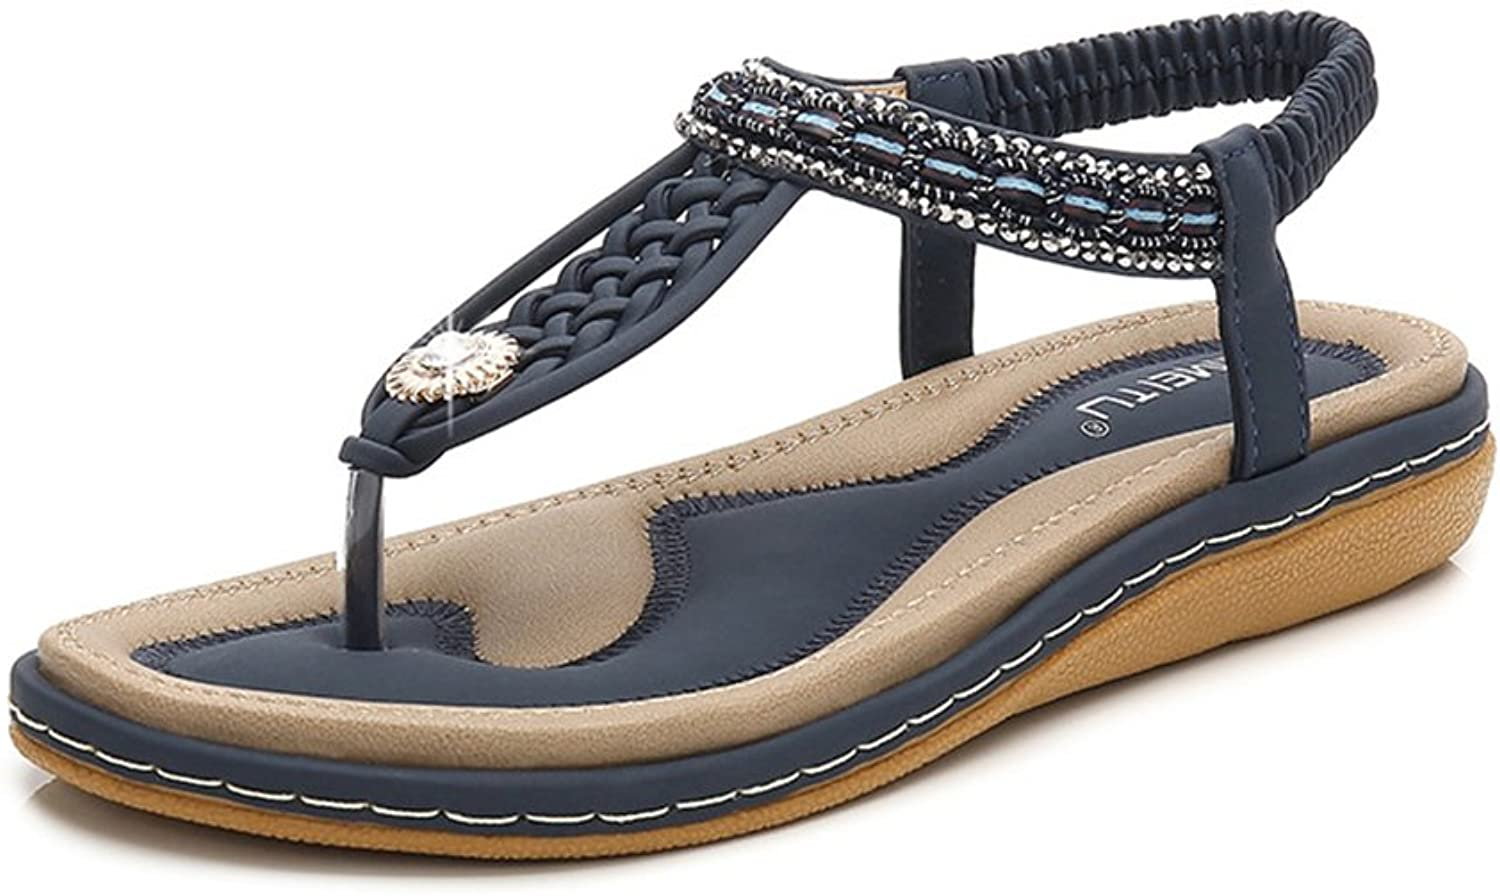 Tuoup Women's Jeweled Knitted Leather Thong Sandles Ladies Sandals